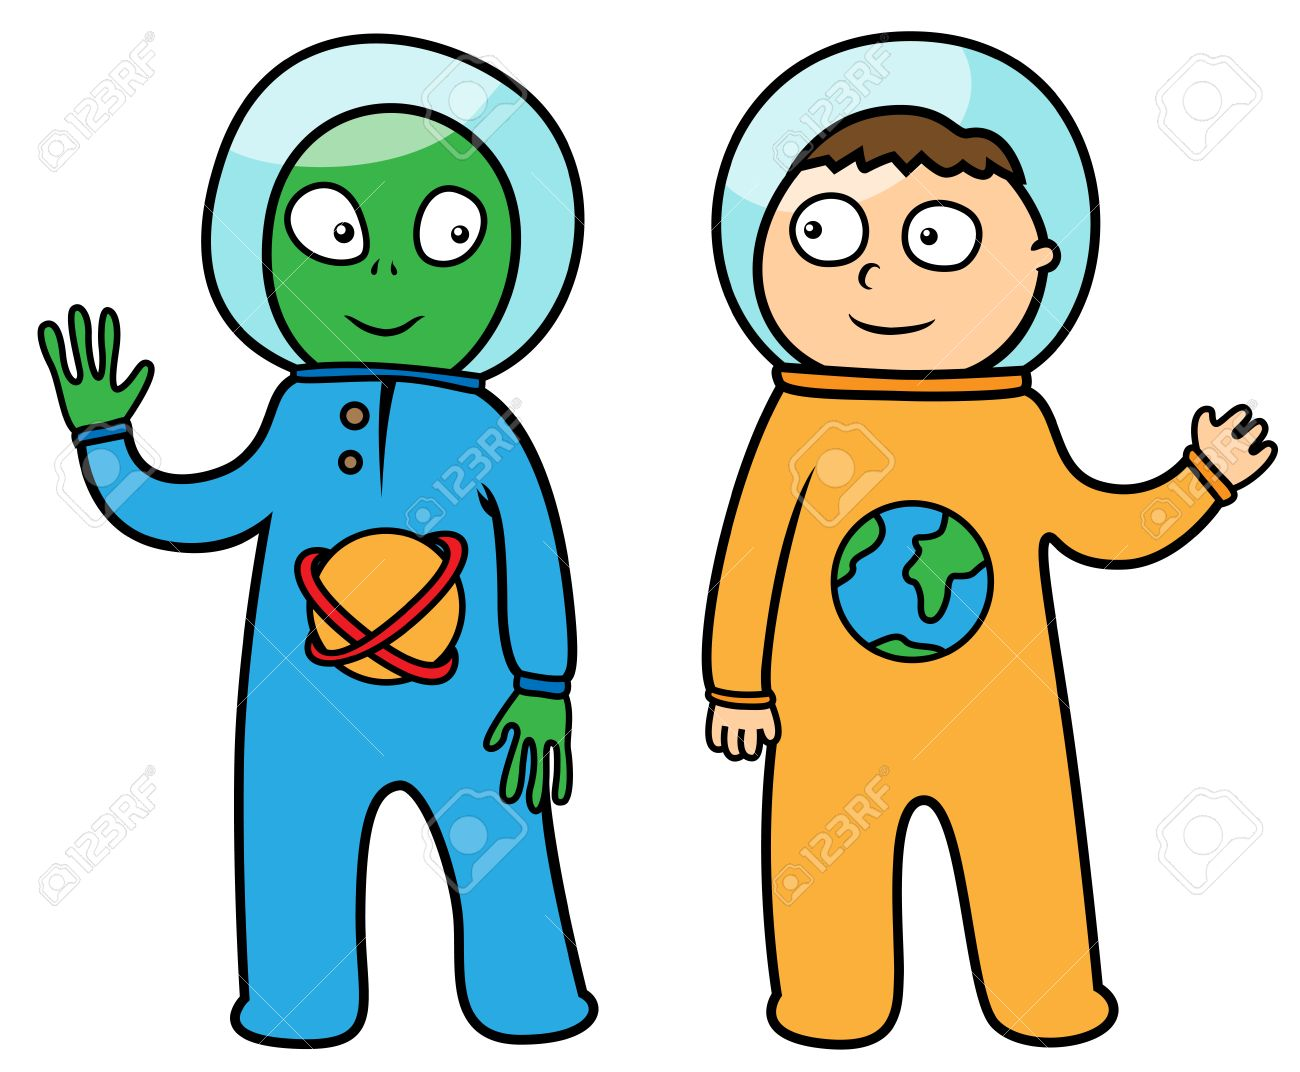 1300x1072 Aliens And Spaceman Cartoon Vector Illustrations Collection Team